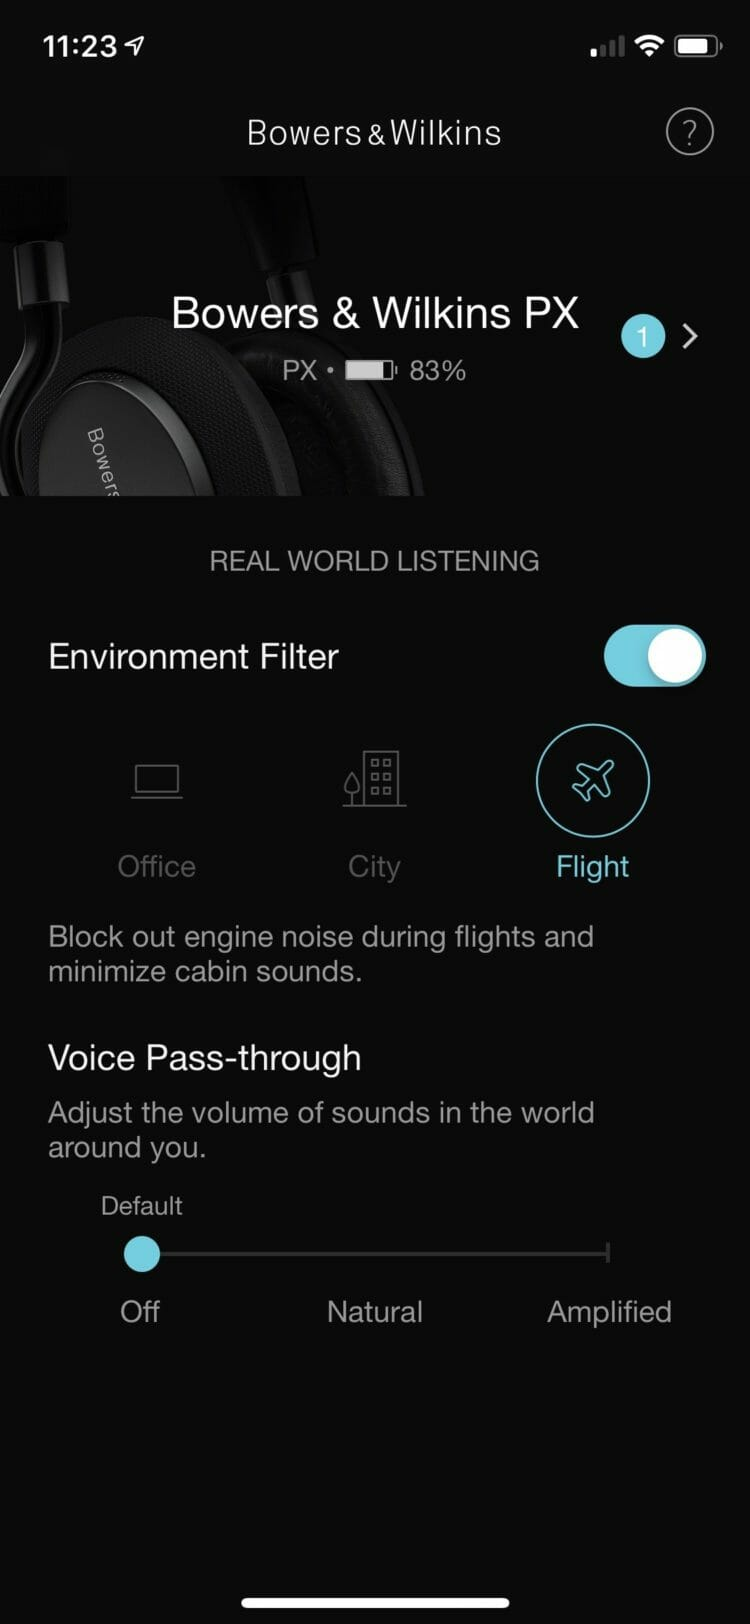 Environment Filter and Voice Pass-through Settings